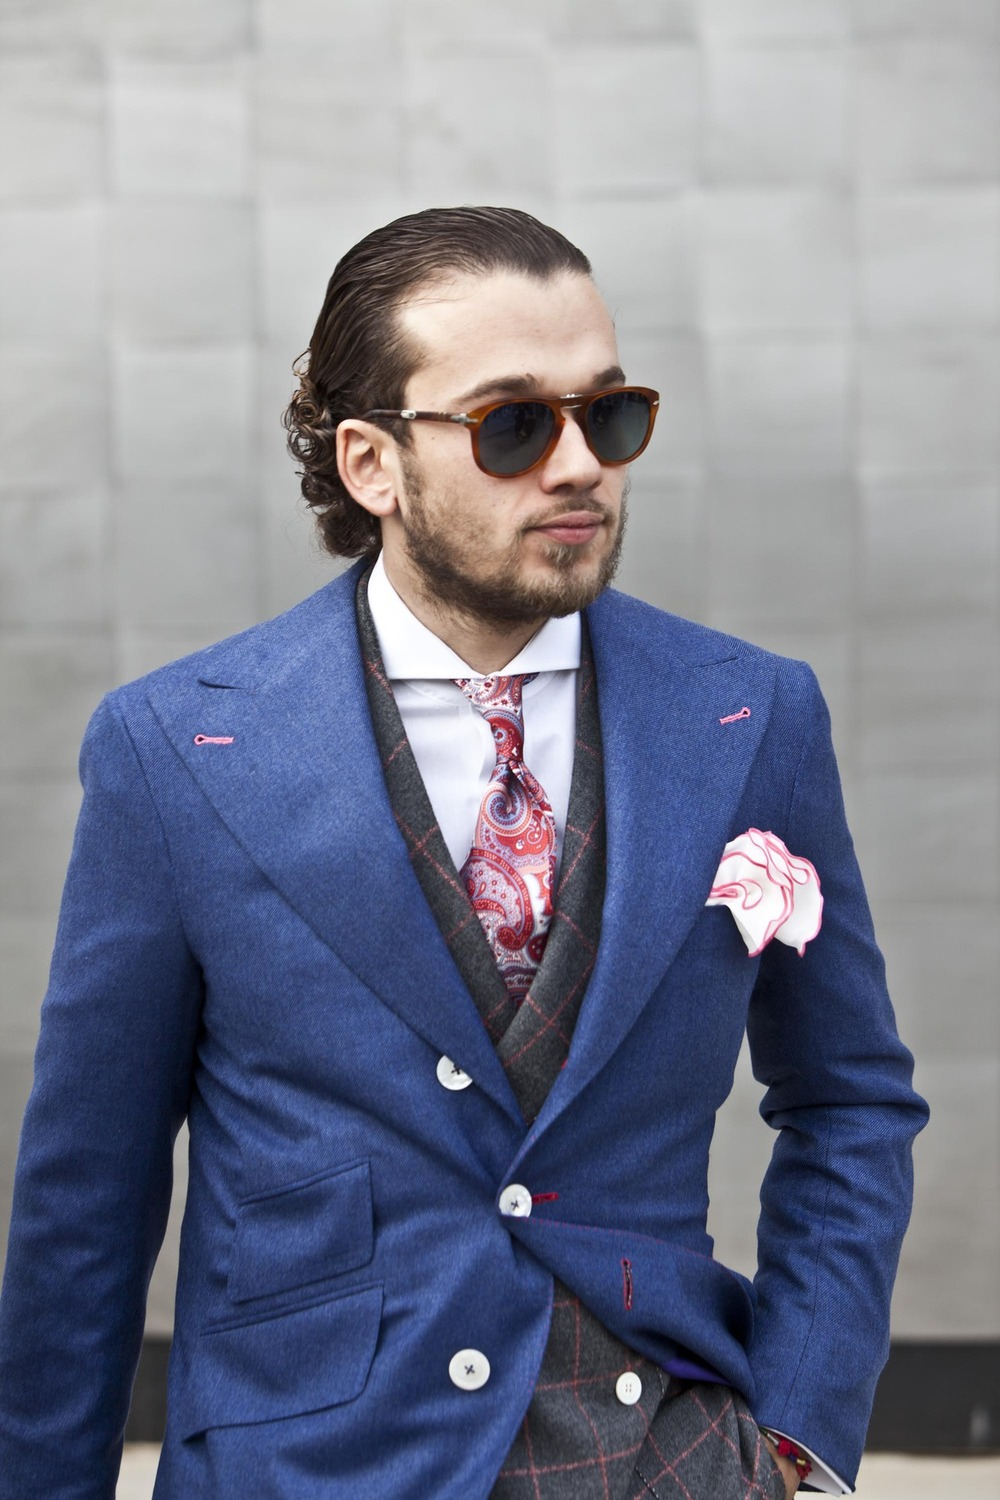 paisley-tie-cutaway-collar-pocket-square-sunglasses.jpg